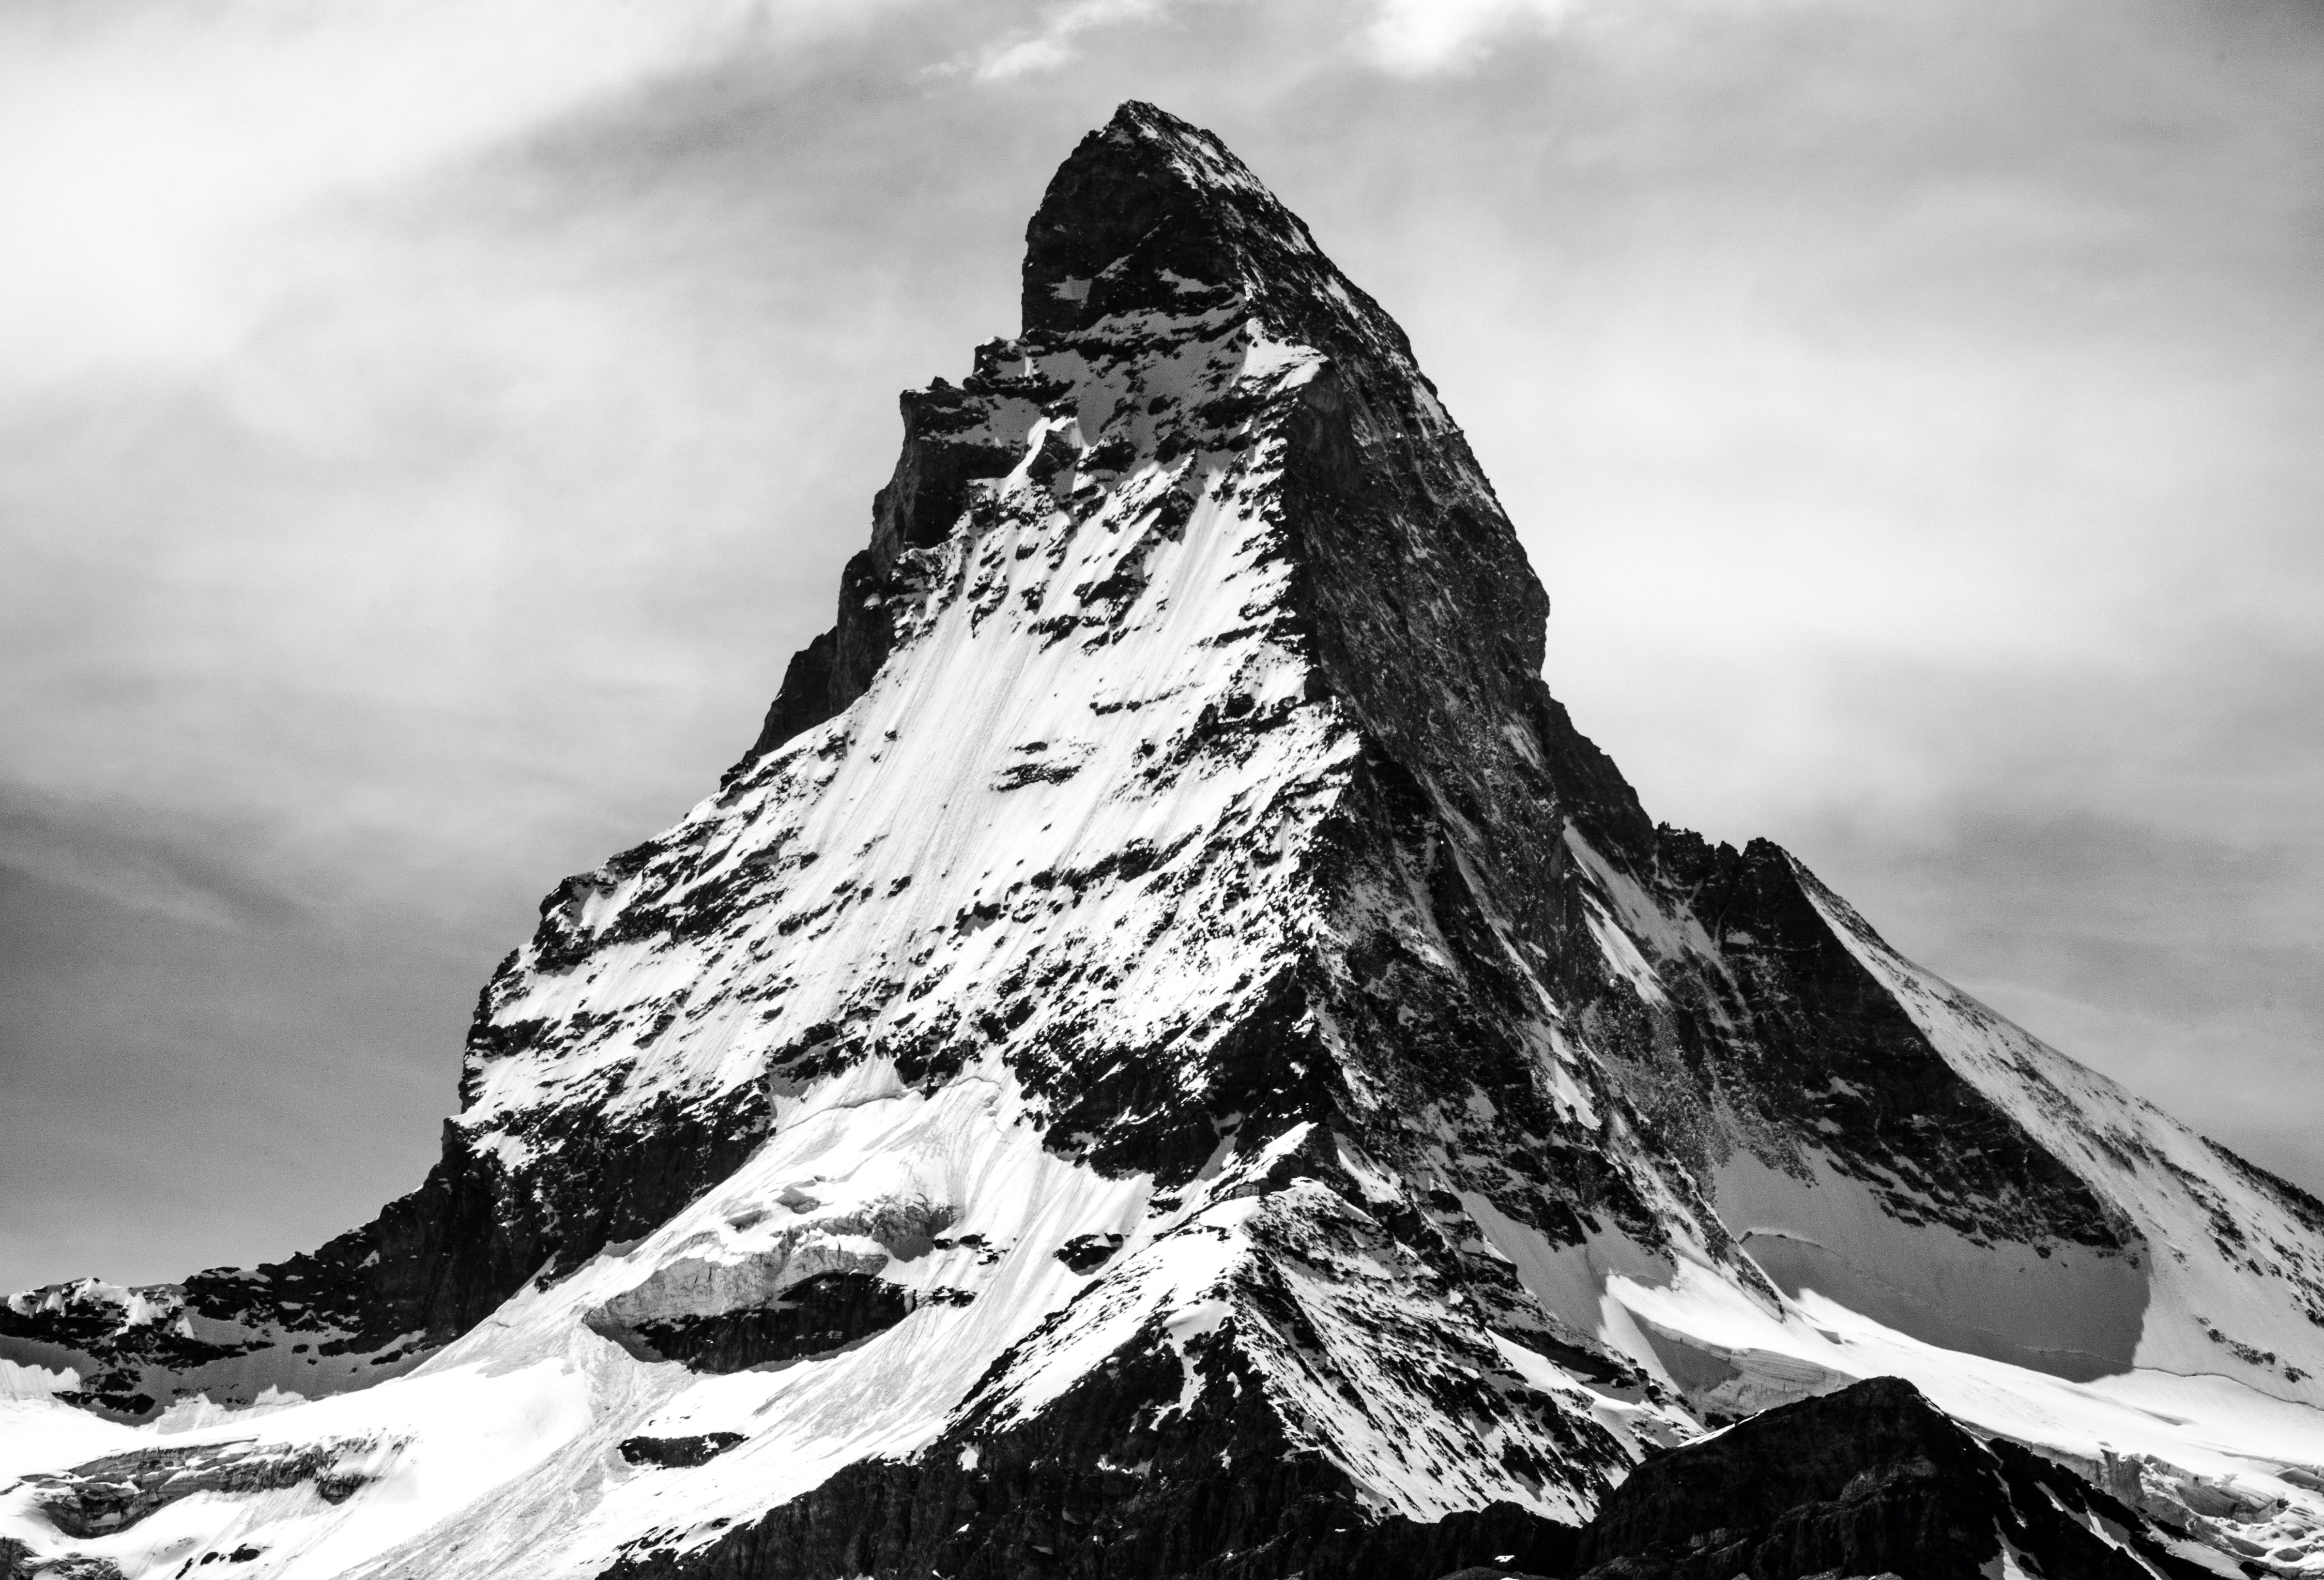 A black and white photo of a peak covered in snow in Zermatt.